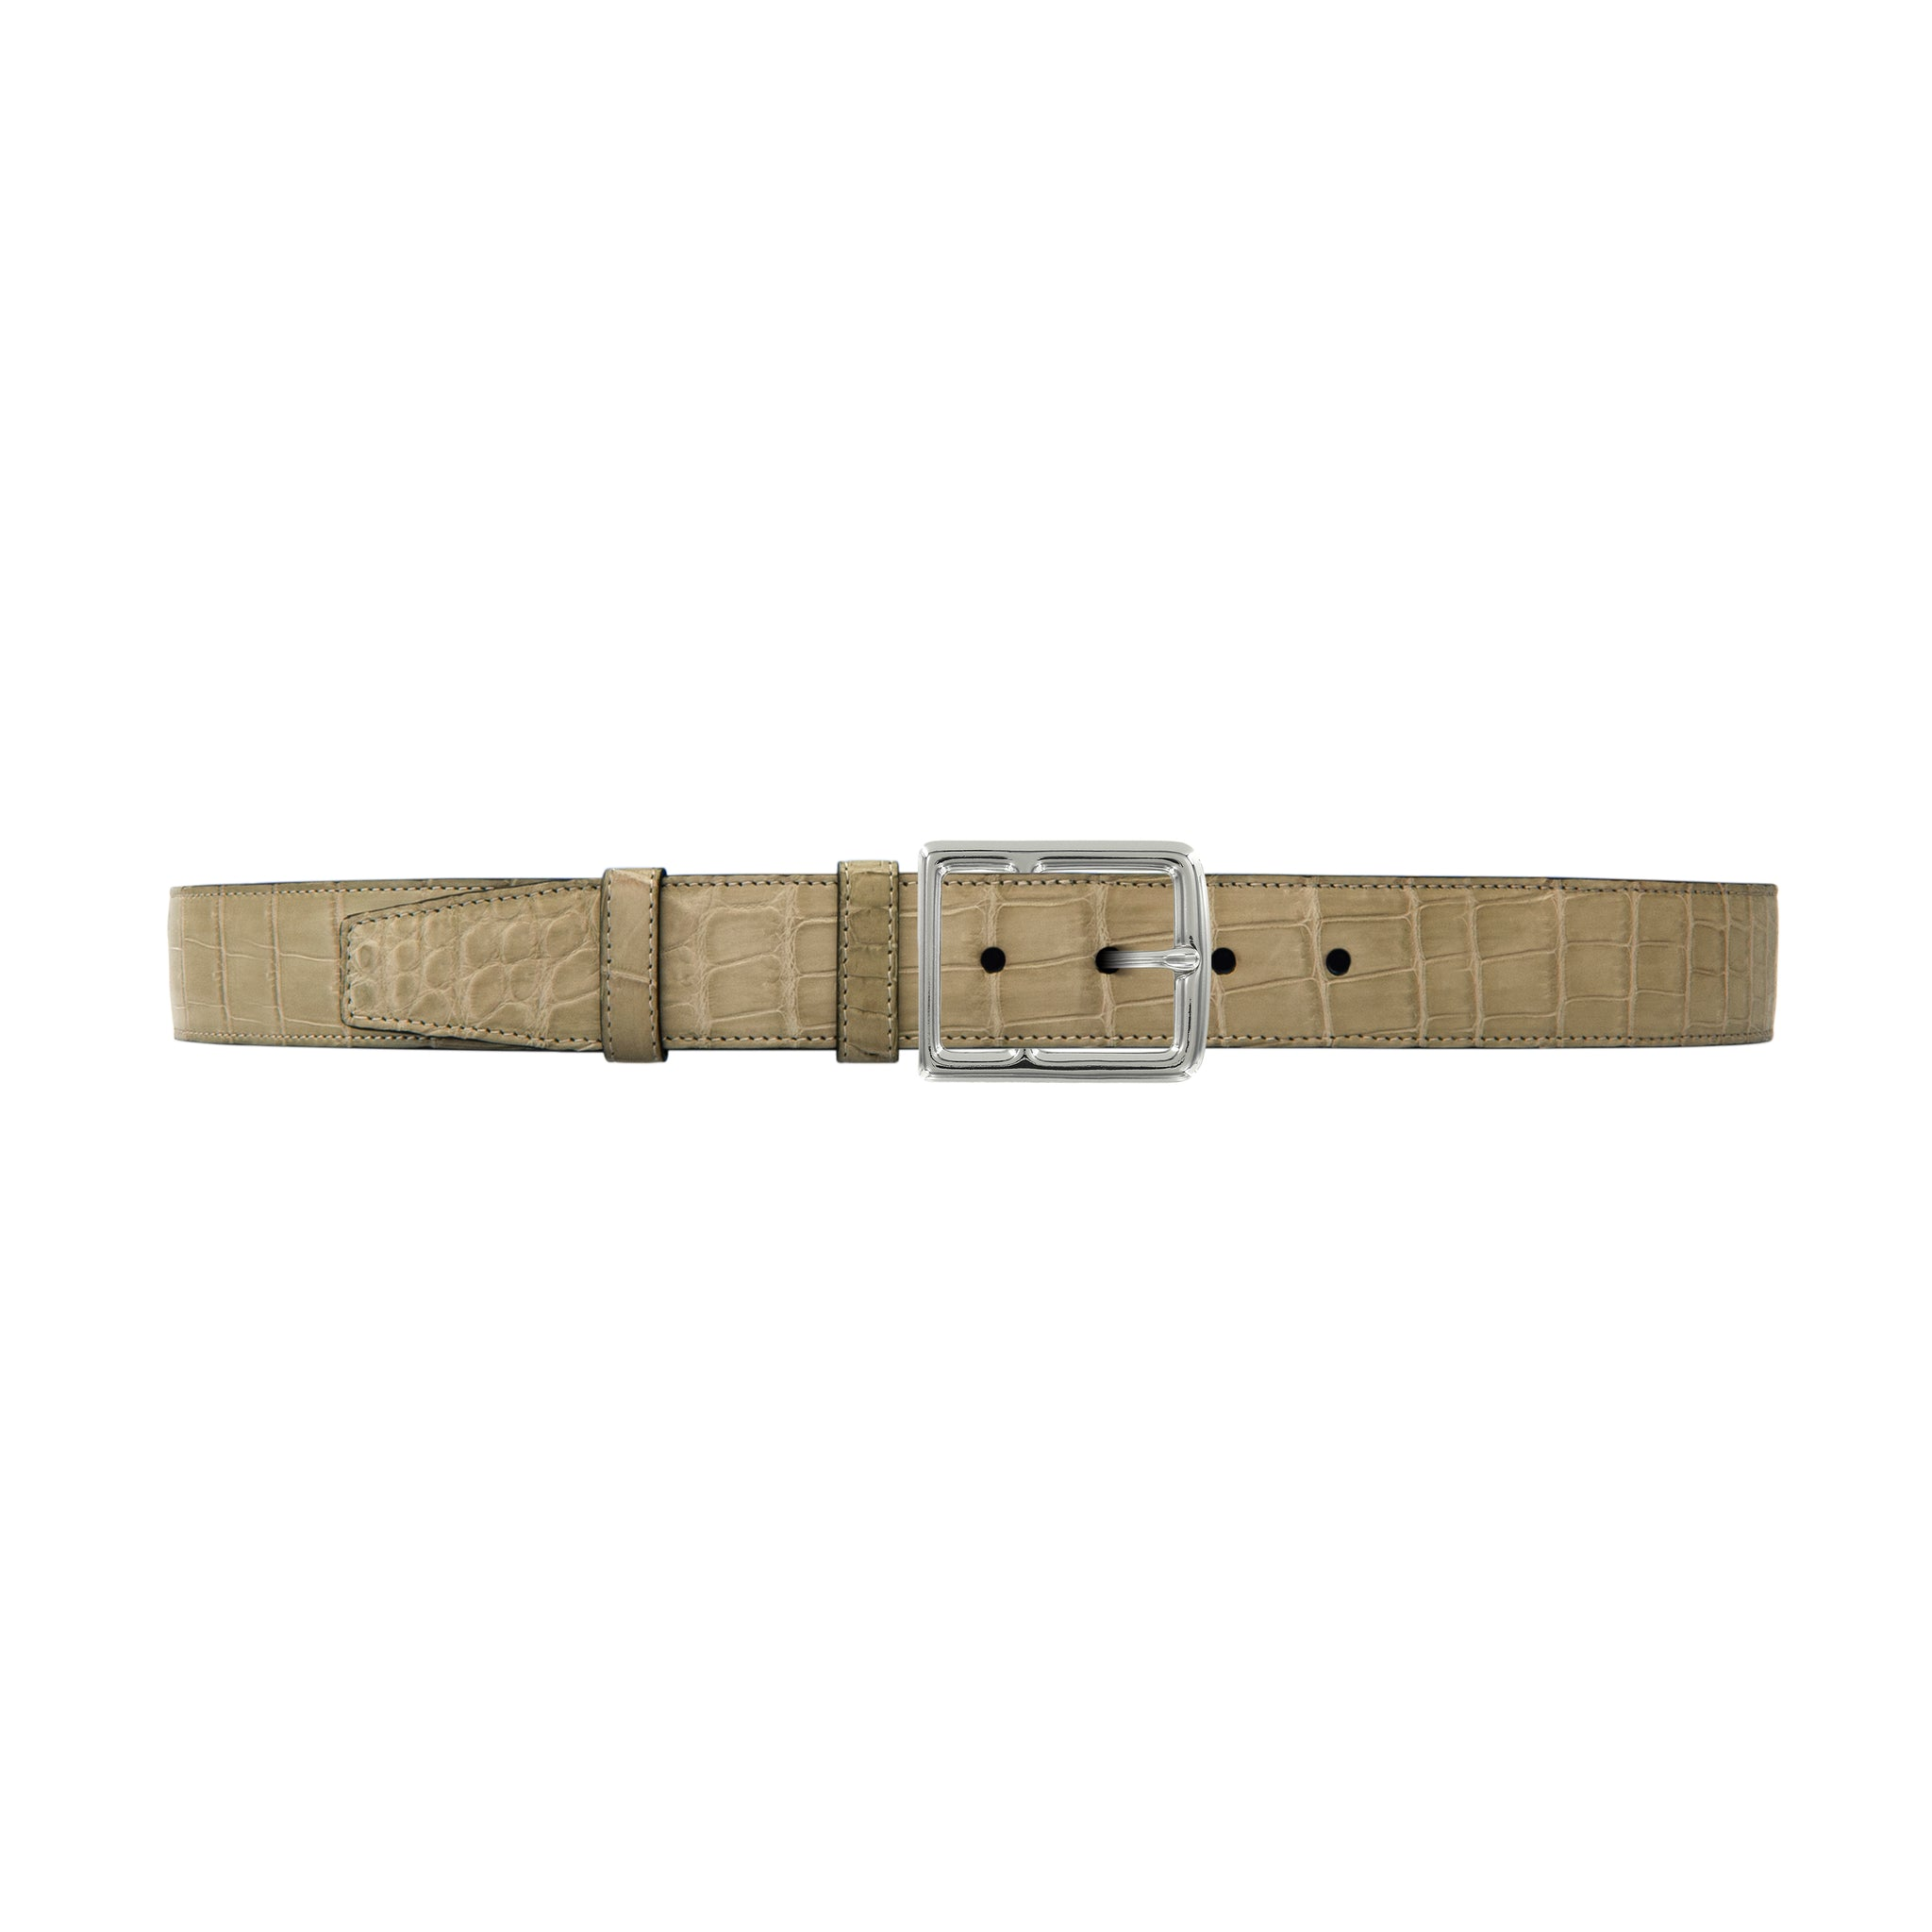 "1 1/2"" Sand Classic Belt with Crawford Casual Buckle in Polished Nickel"